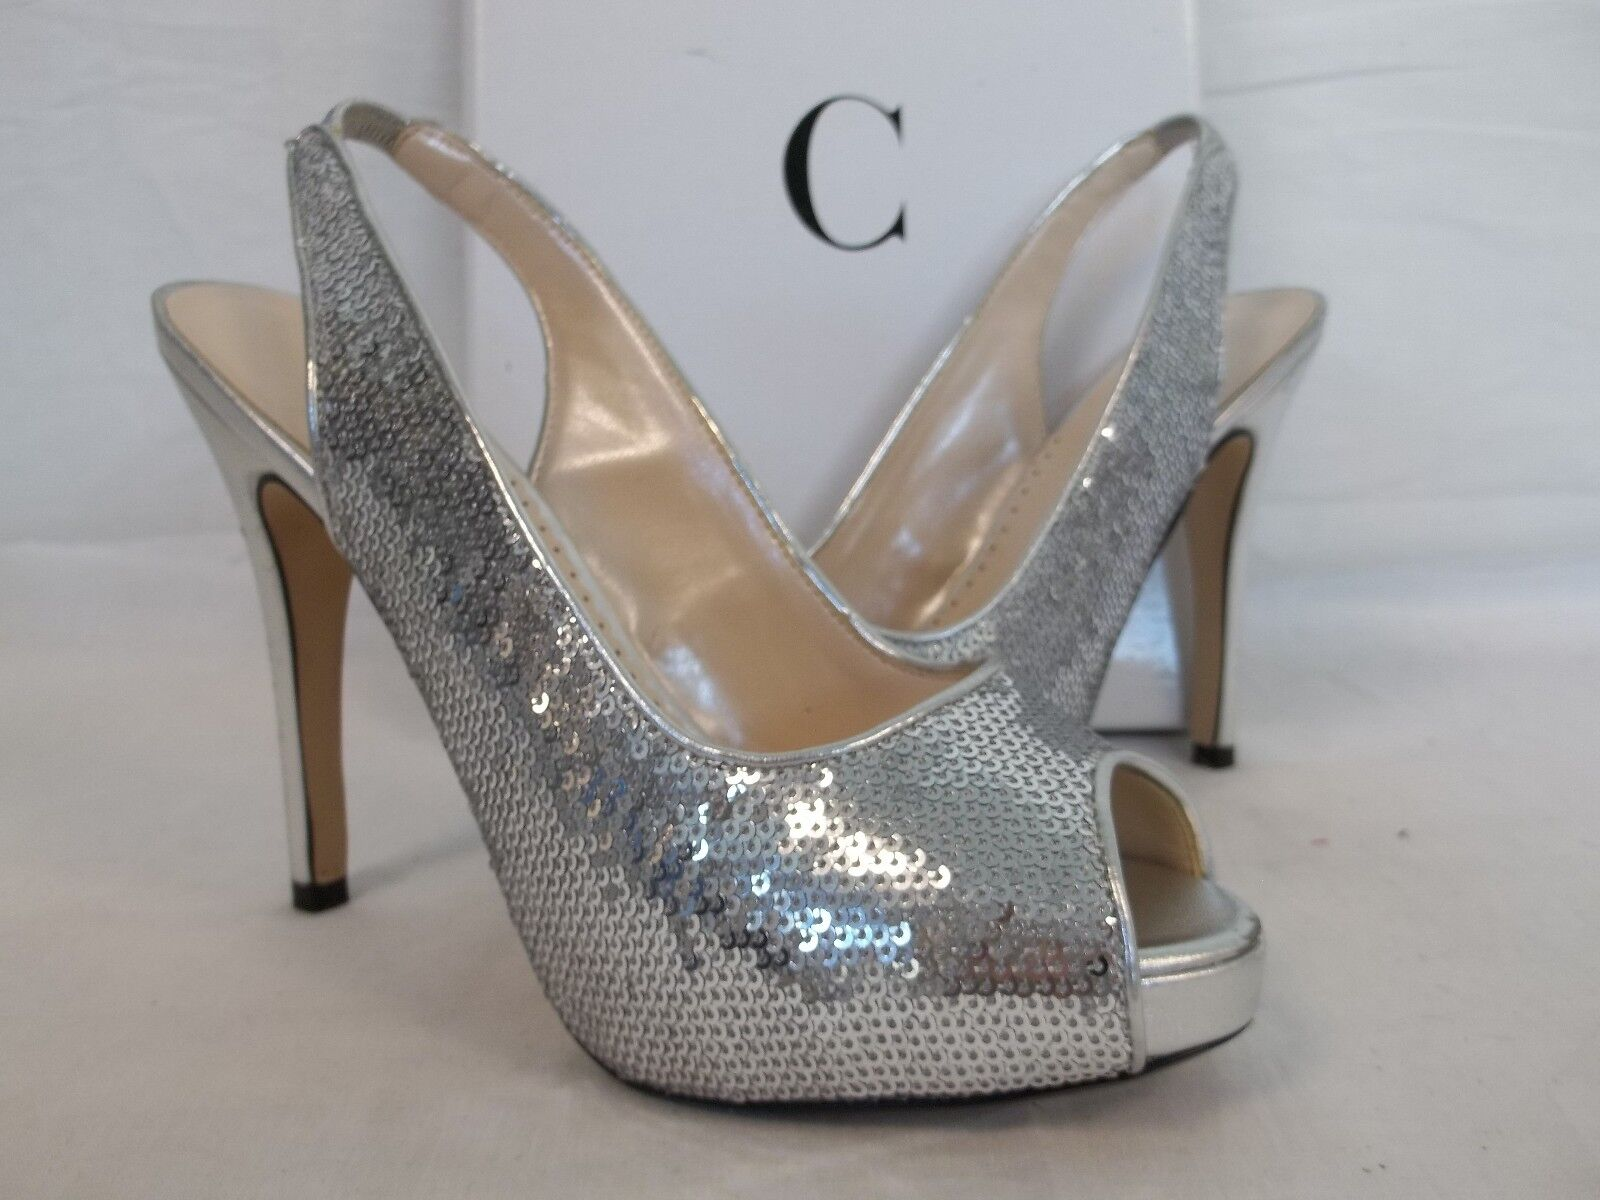 Caparros 6.5 M Channing Silver Satin Open Toe Sling Backs Heels NEU Damenschuhe Schuhes